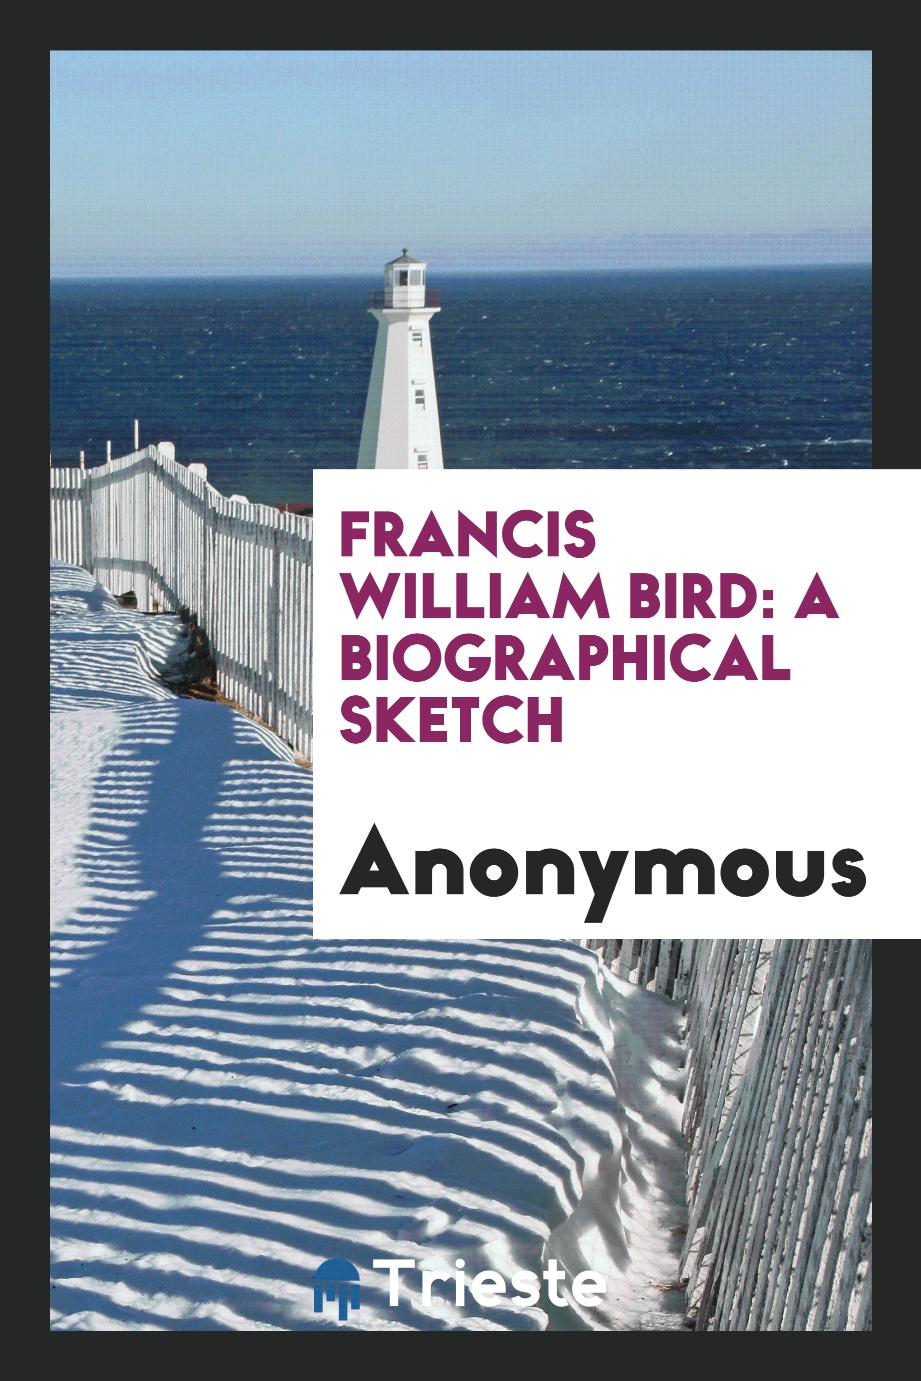 Anonymous - Francis William Bird: A Biographical Sketch